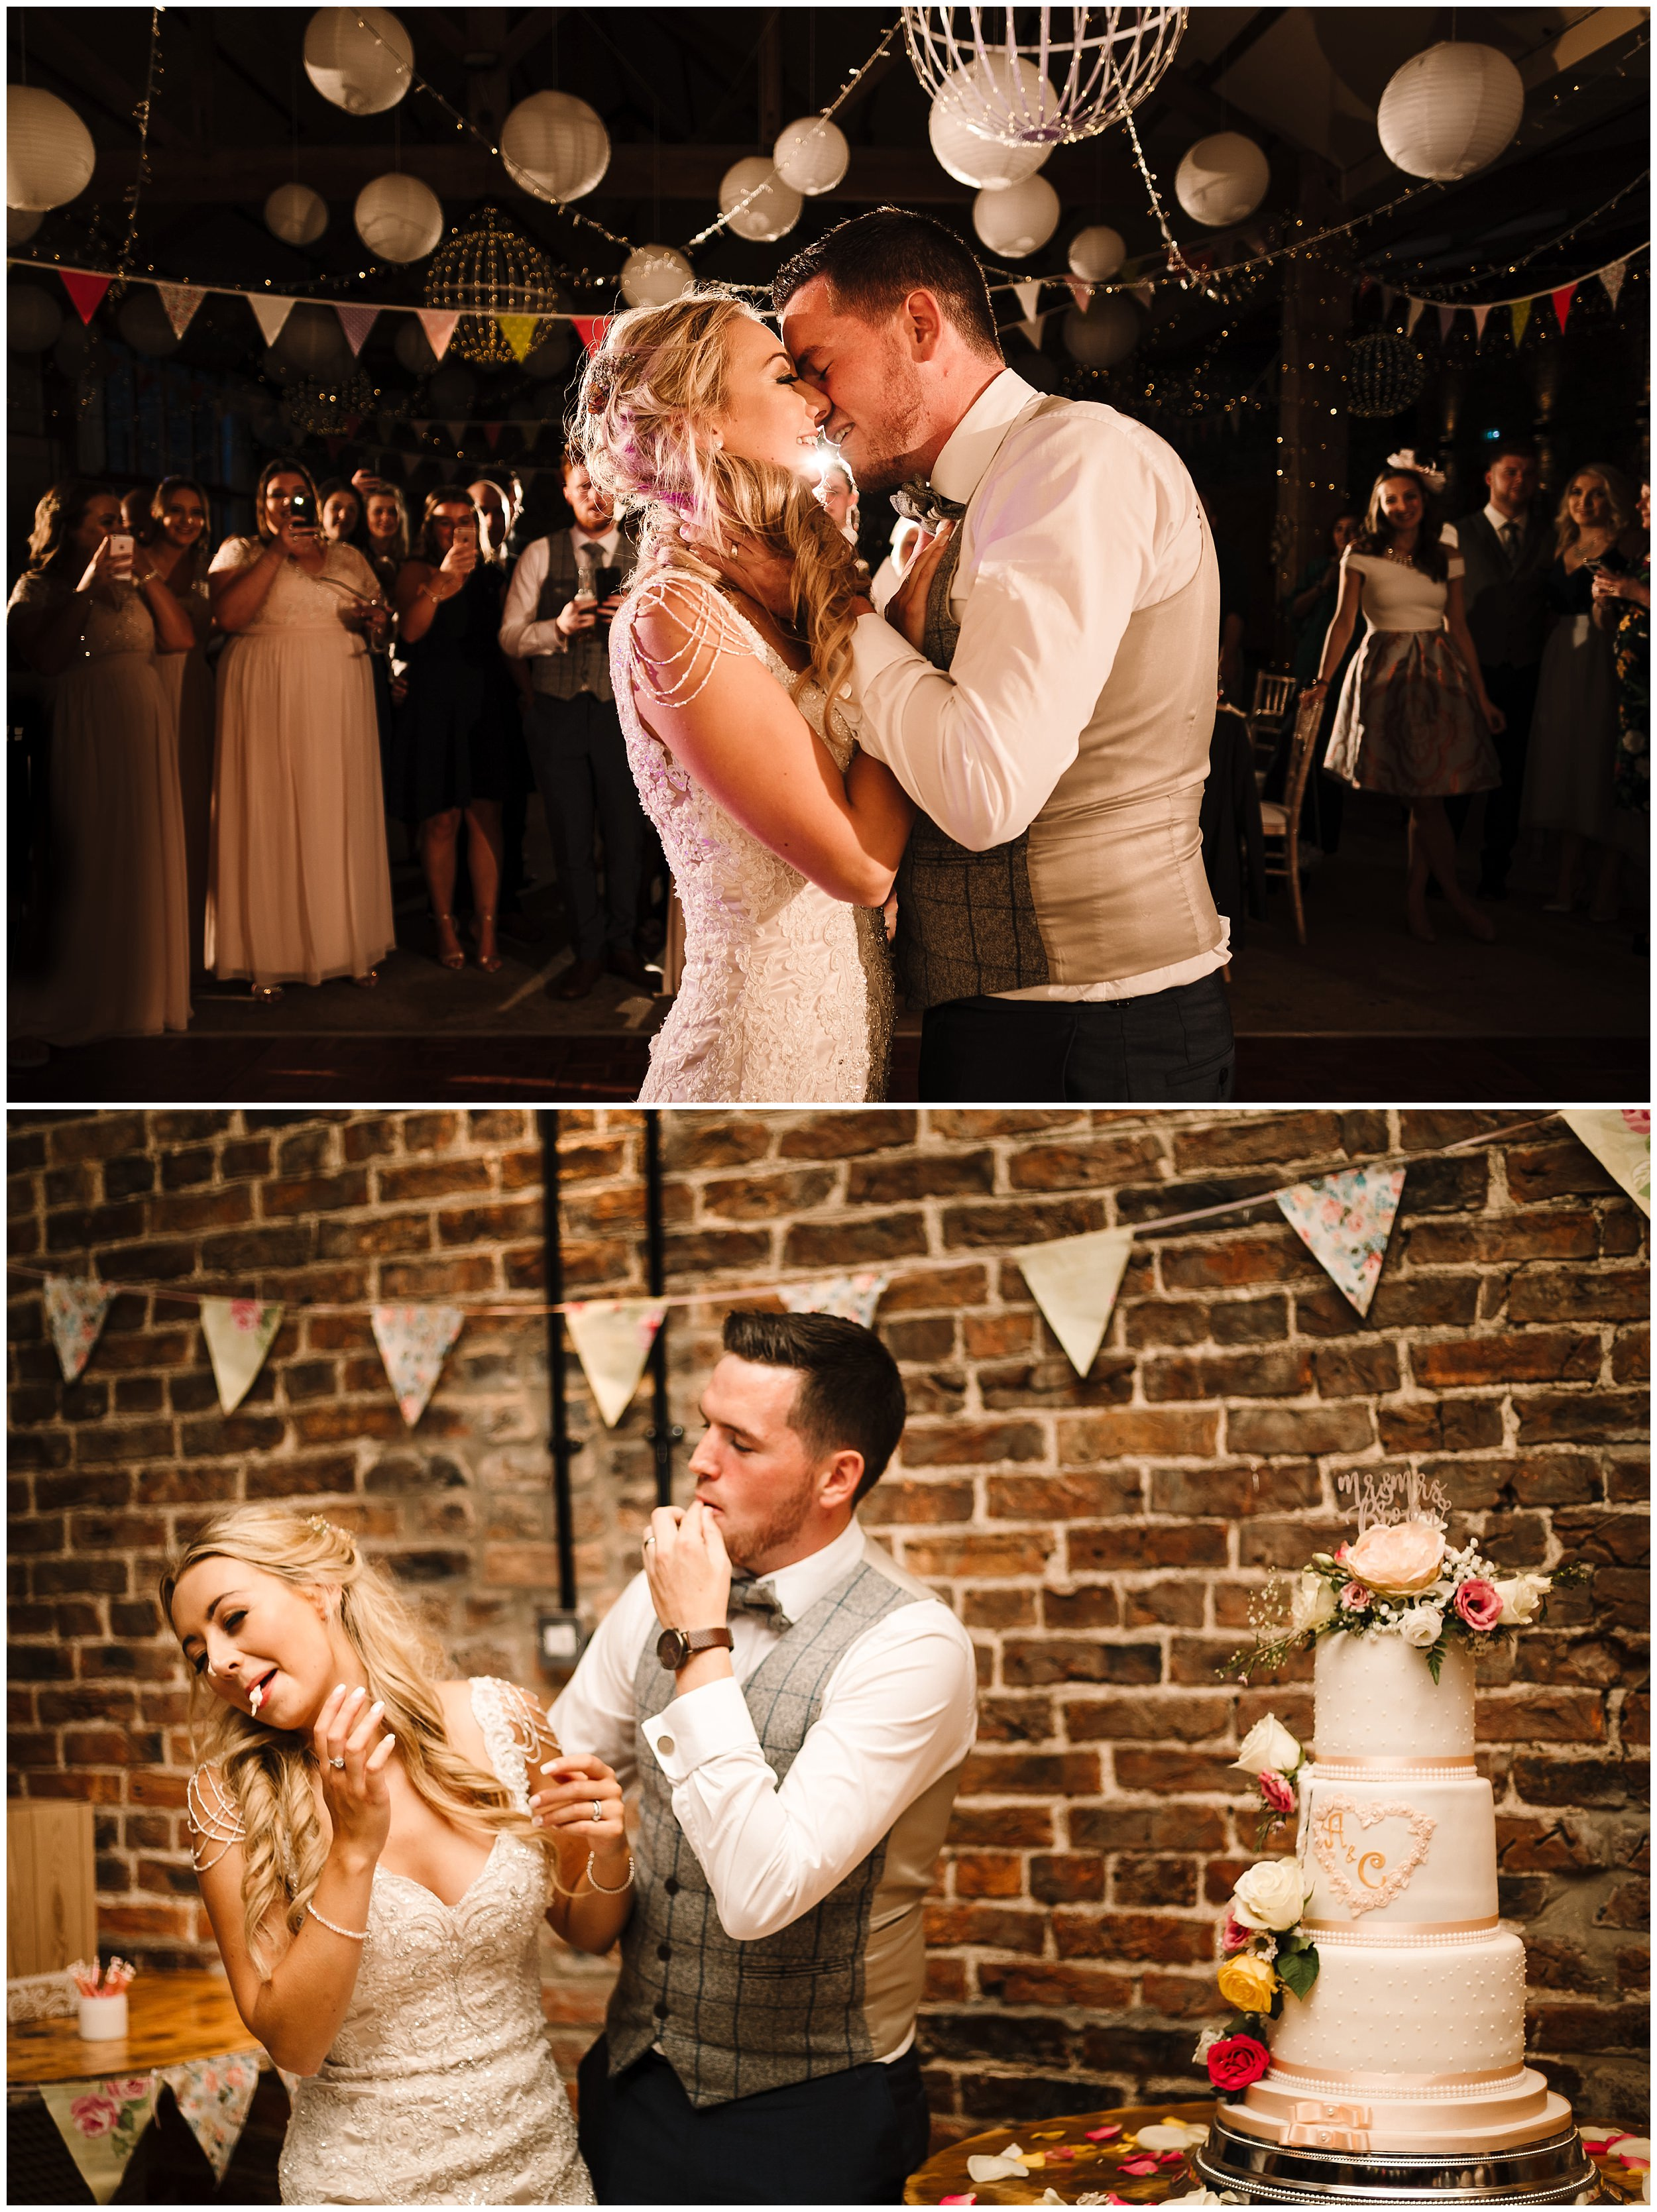 A BRIDE AND GROOM DOING THEIR FIRST DANCE AND CUTTING THEIR CAKE IN YORKSHIRE